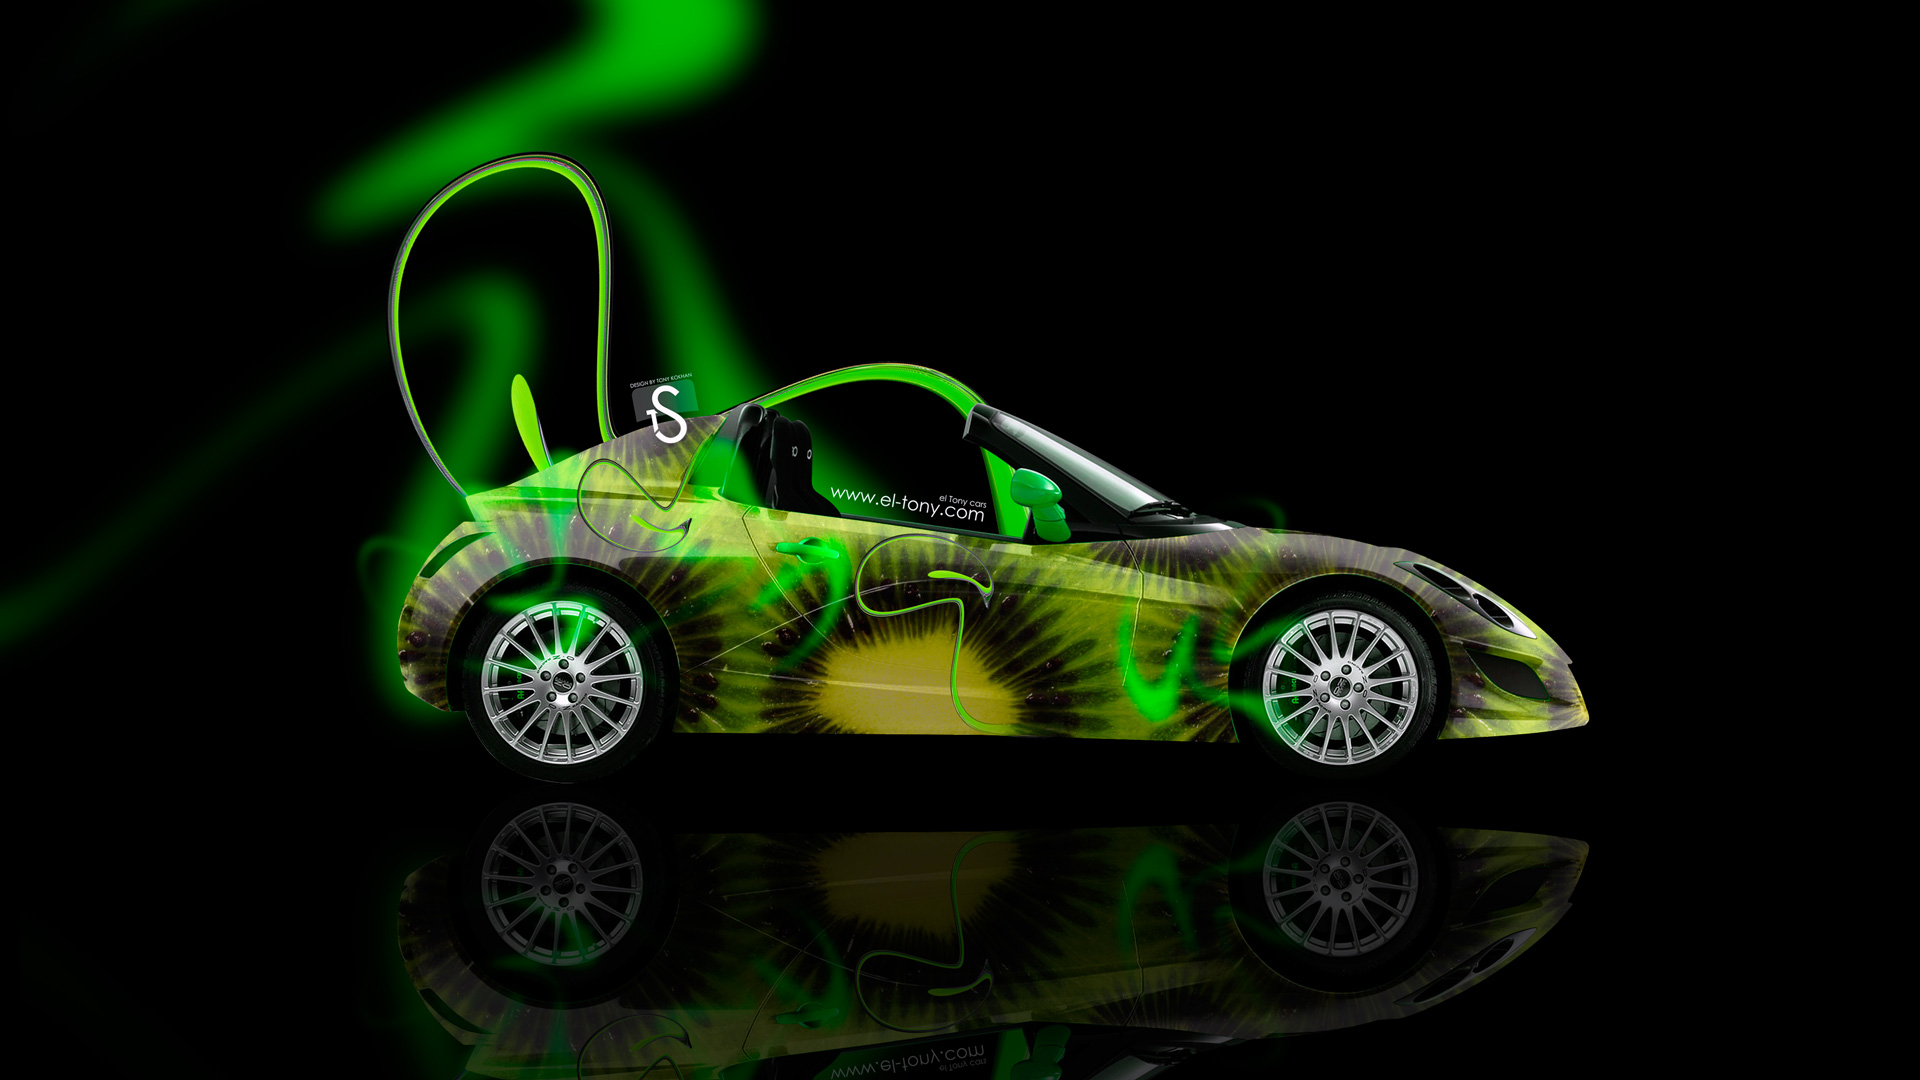 Etonnant Edag Neon Kiwi Car 2014 HD Wallpapers Design